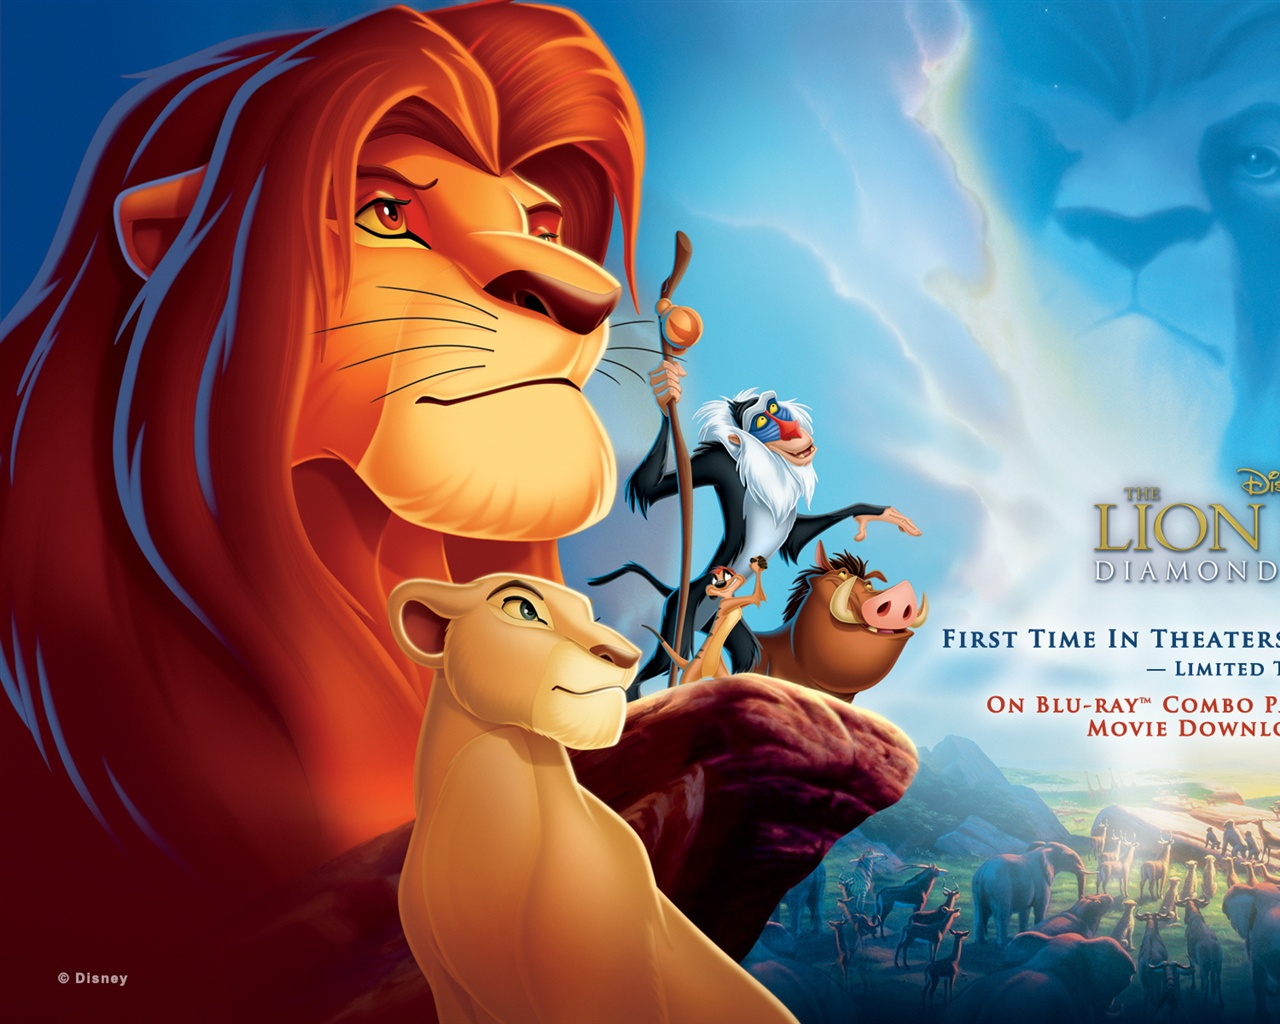 Disney movie The Lion King wallpaper - 1280x1024